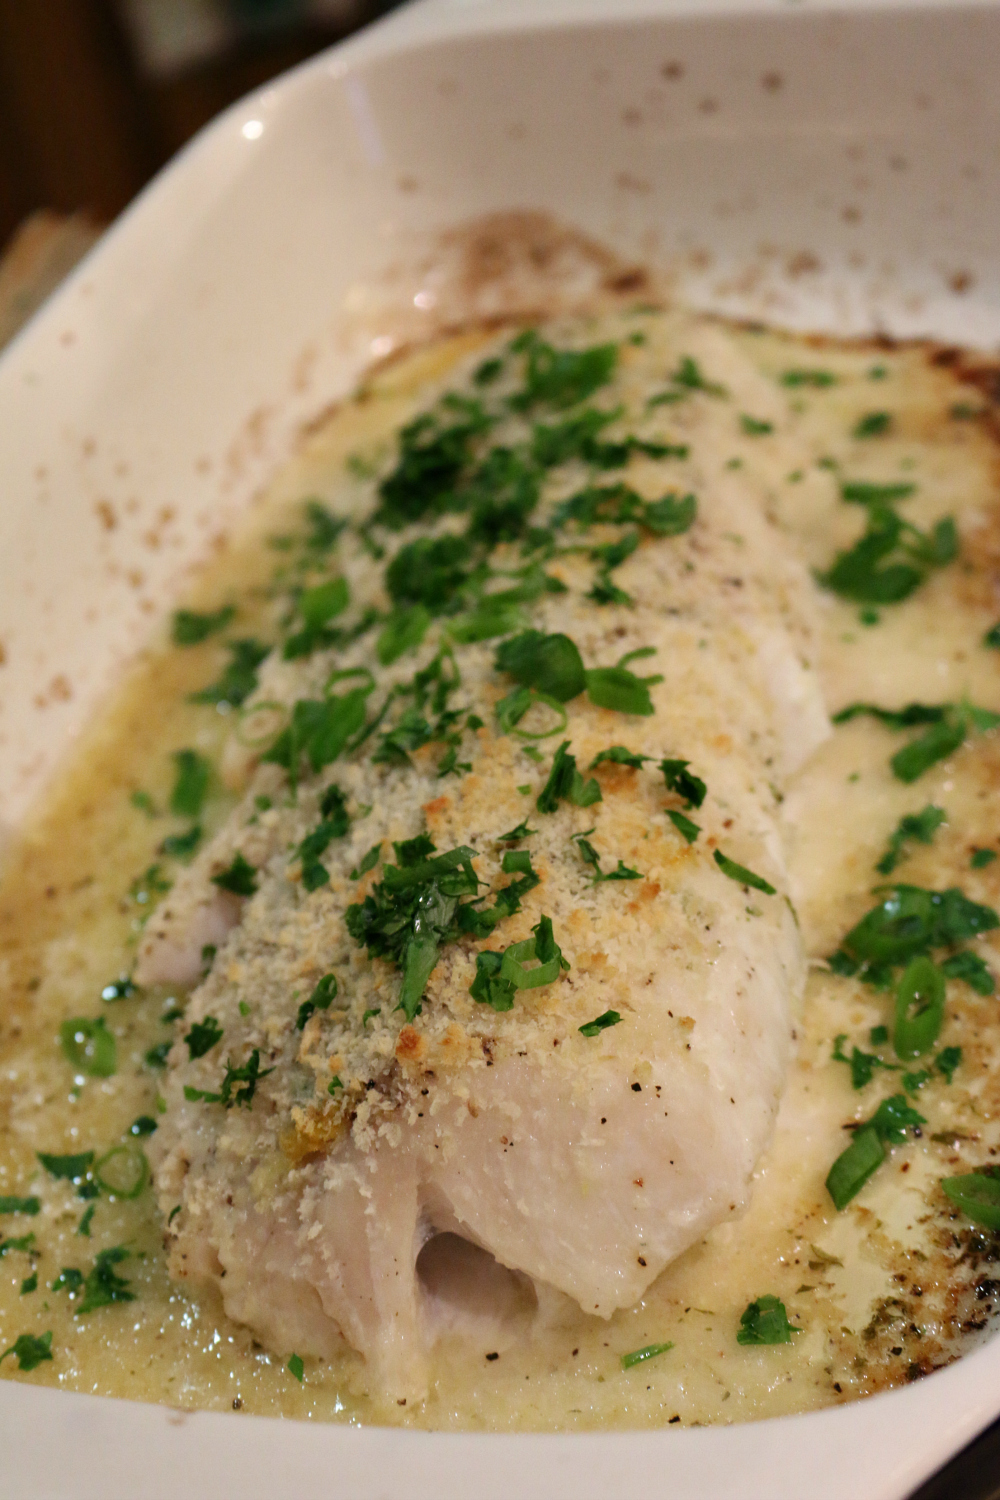 The fresh lemon and herbs really make the dish. Easy recipe for Oven Baked Cod.